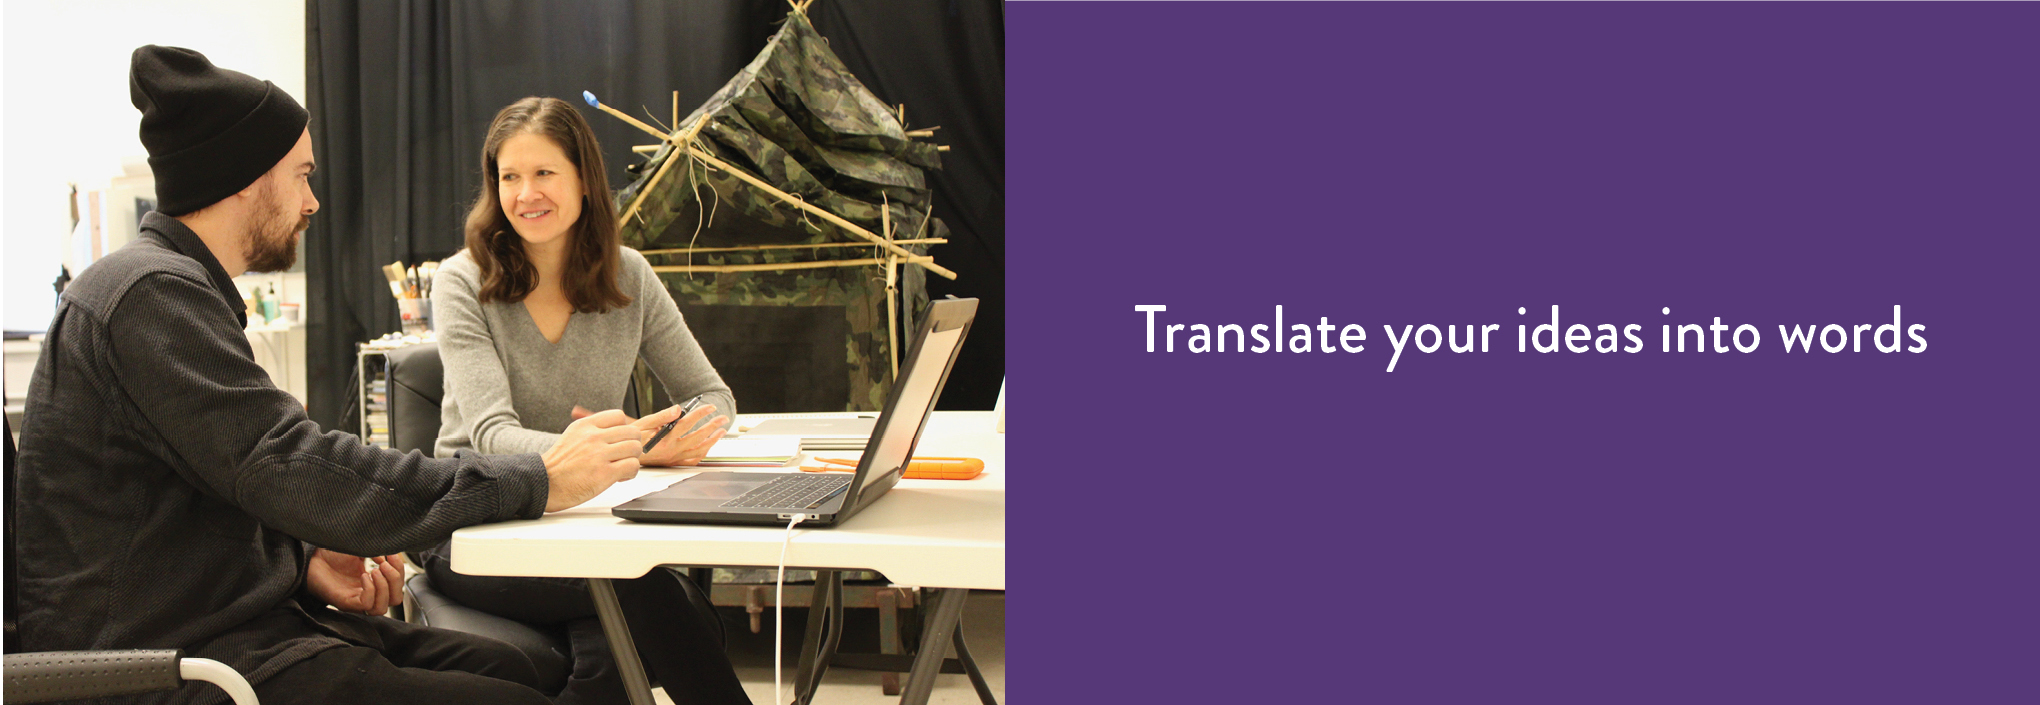 Translate-website image-80% purple.jpg